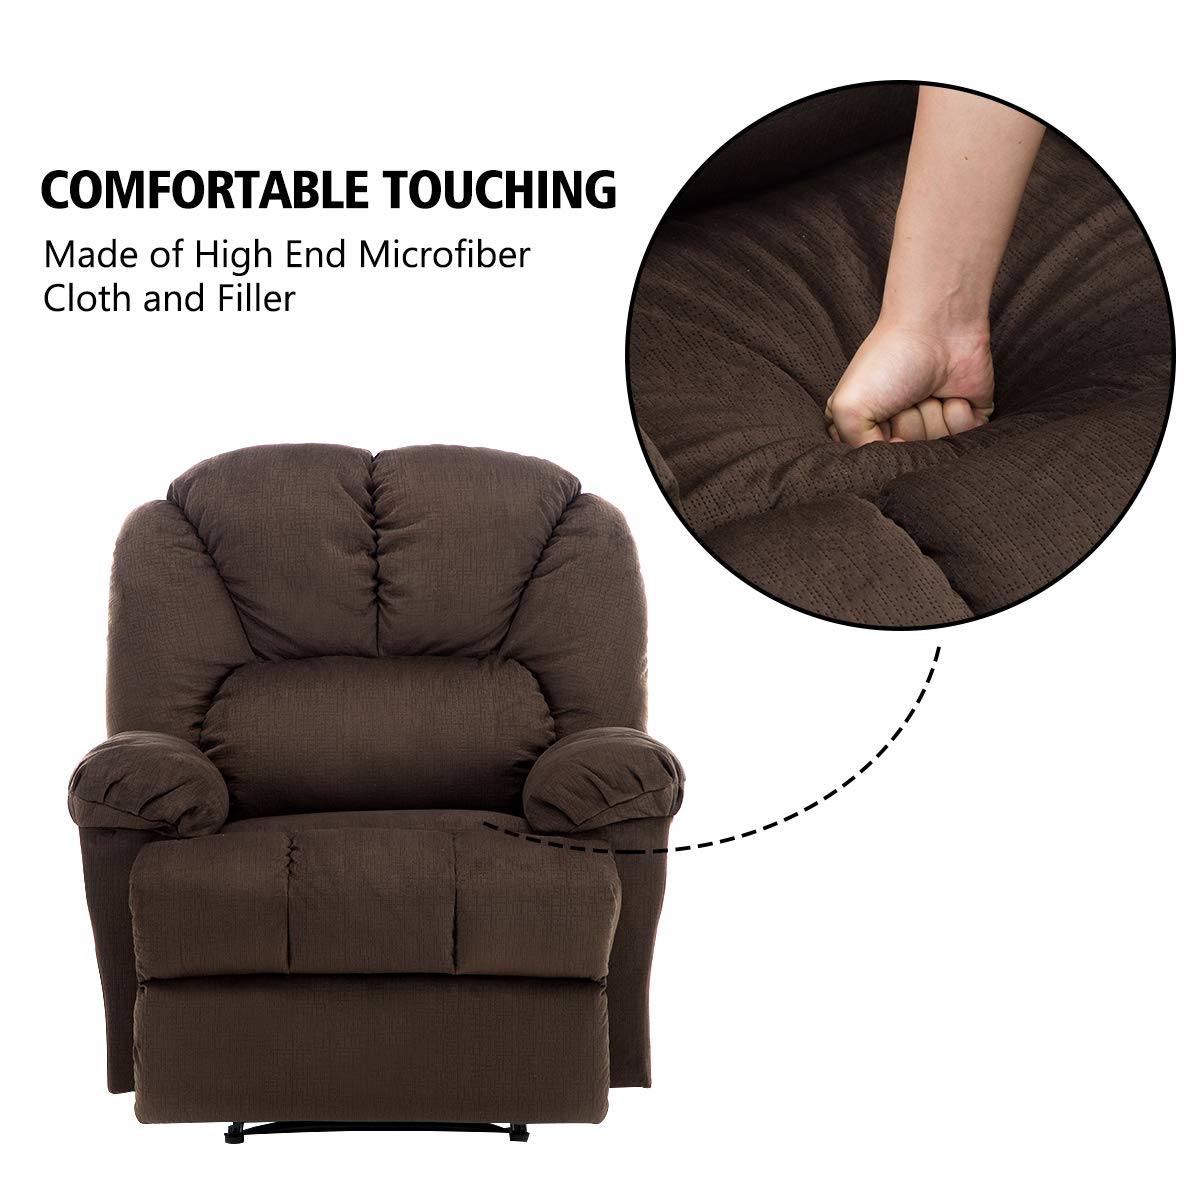 Fabric Recliner Chair, Bonzy Home Self-adjusting the Backrest and Footrest, Living Room Chair with Short Plush Fabric Overstuffed Design Recliner Chair Comfortable for Living Room Bedroom Theater Room